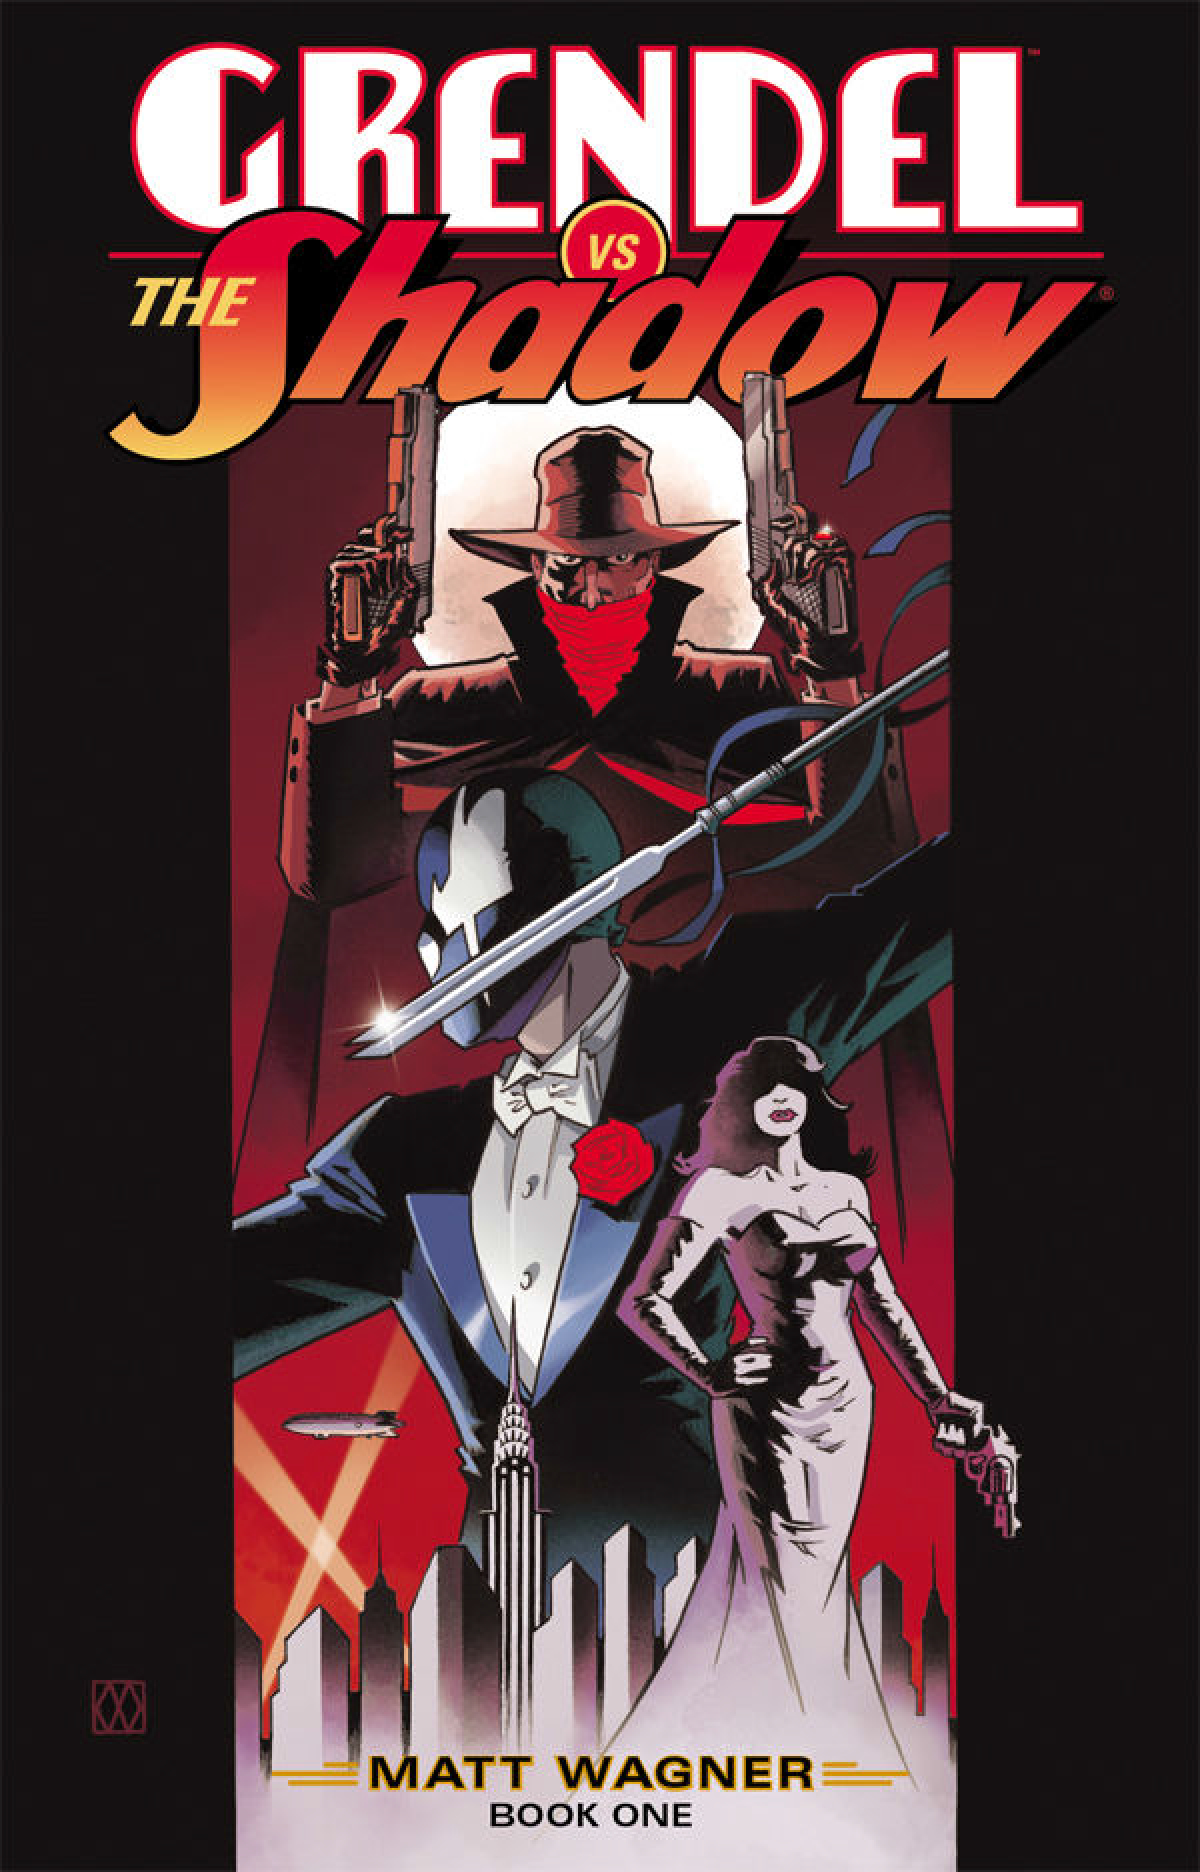 GRENDEL VS SHADOW #1